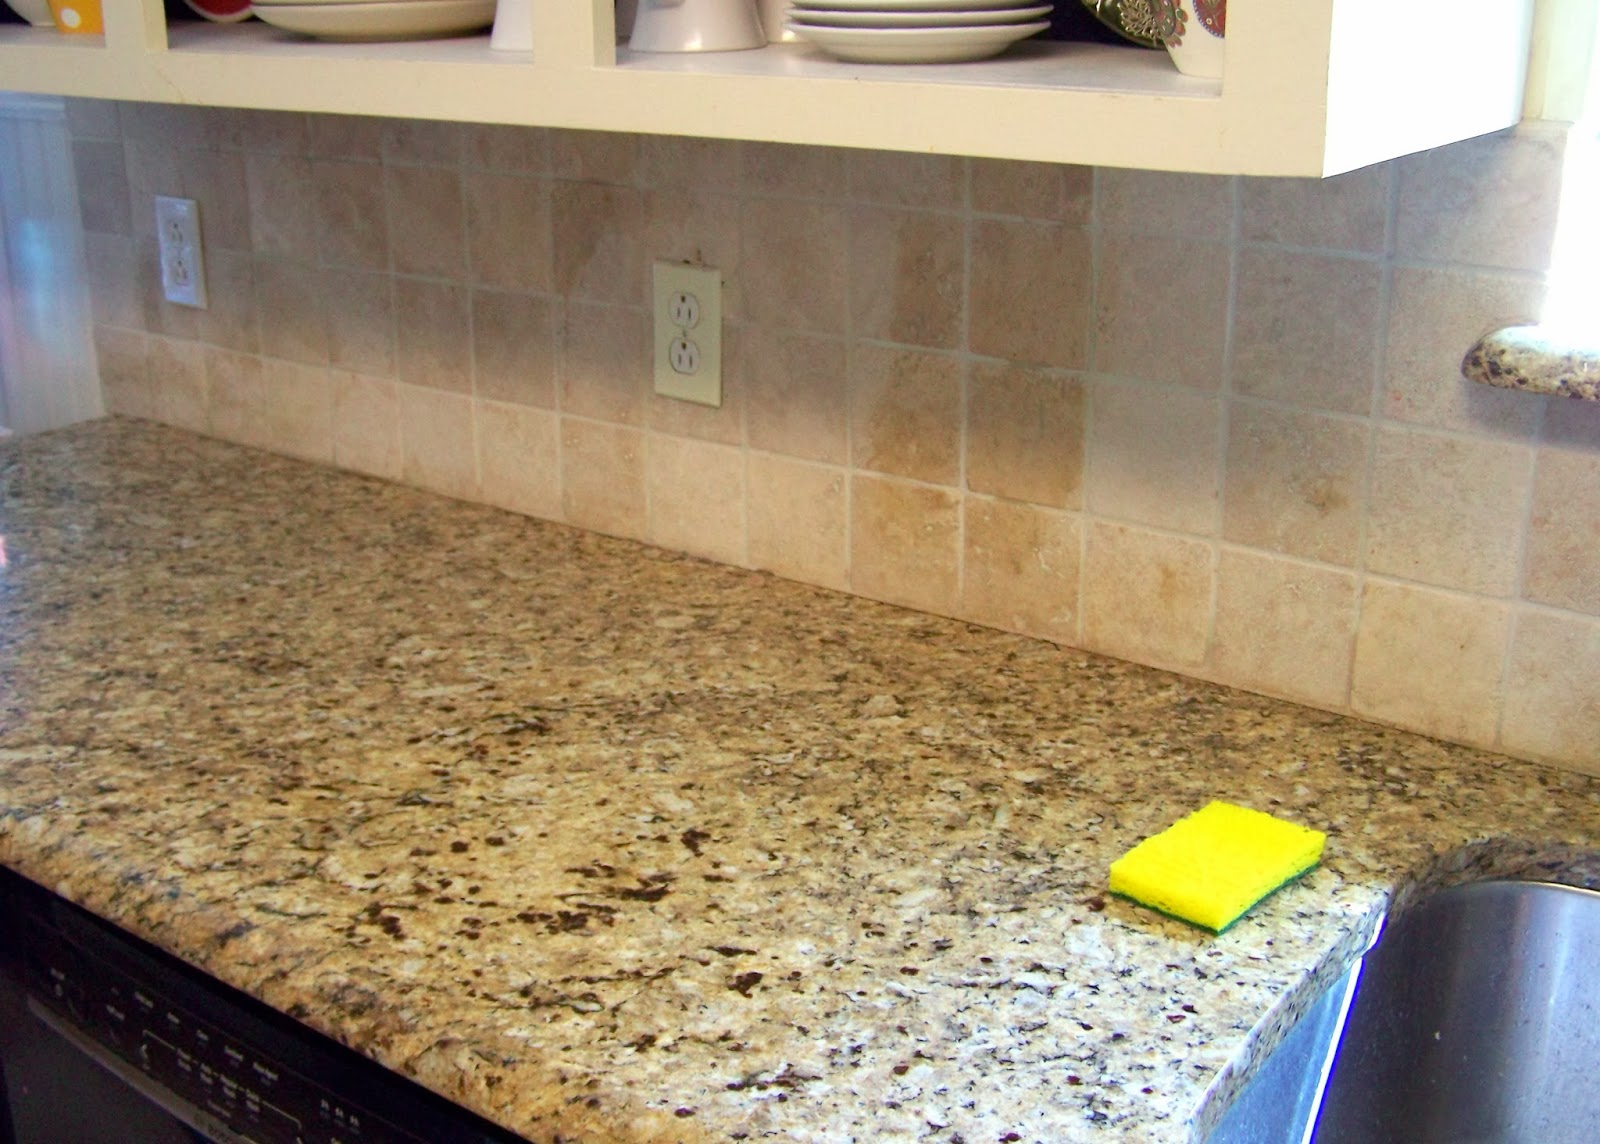 Kitchen Floor Tile Paint Older And Wisor Painting A Tile Backsplash And More Easy Kitchen